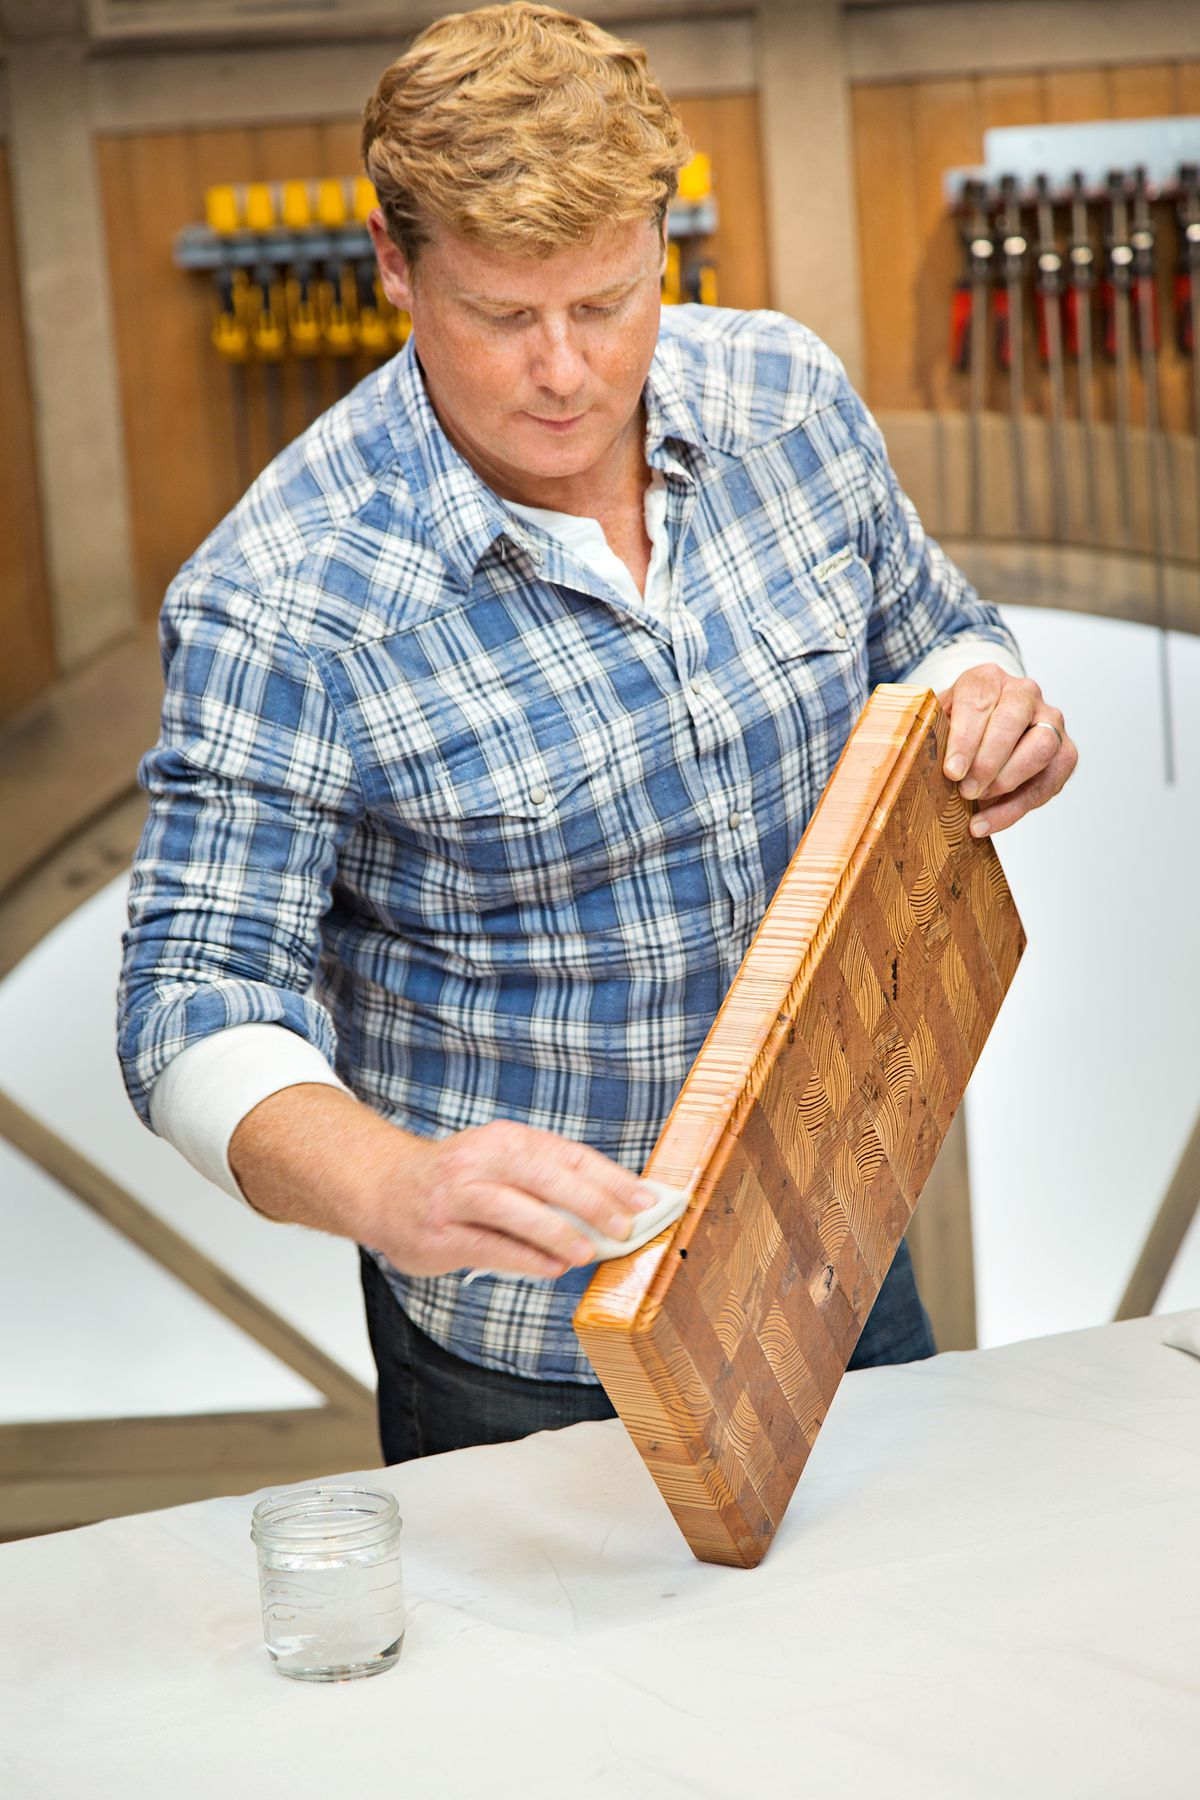 Person coating the end grain cutting board with food grade oil.